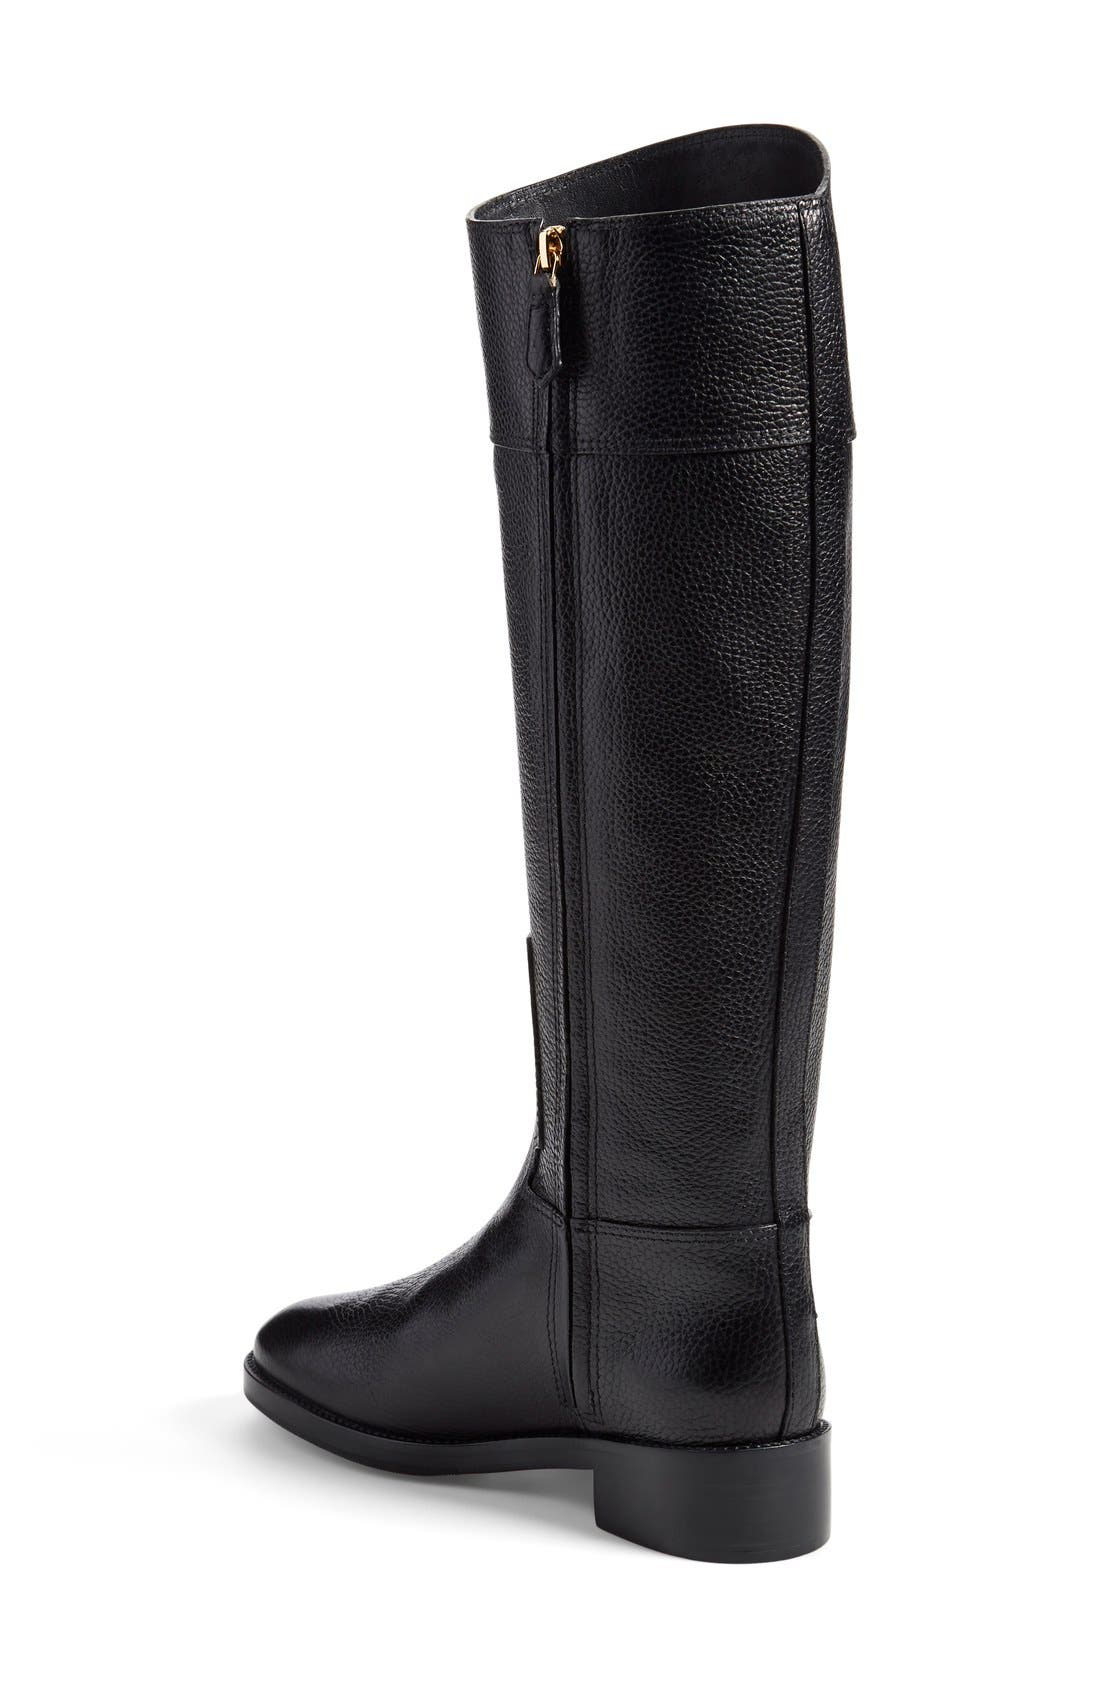 Alternate Image 2  - Tory Burch 'Joanna' Riding Boot (Women) (Nordstrom Exclusive)